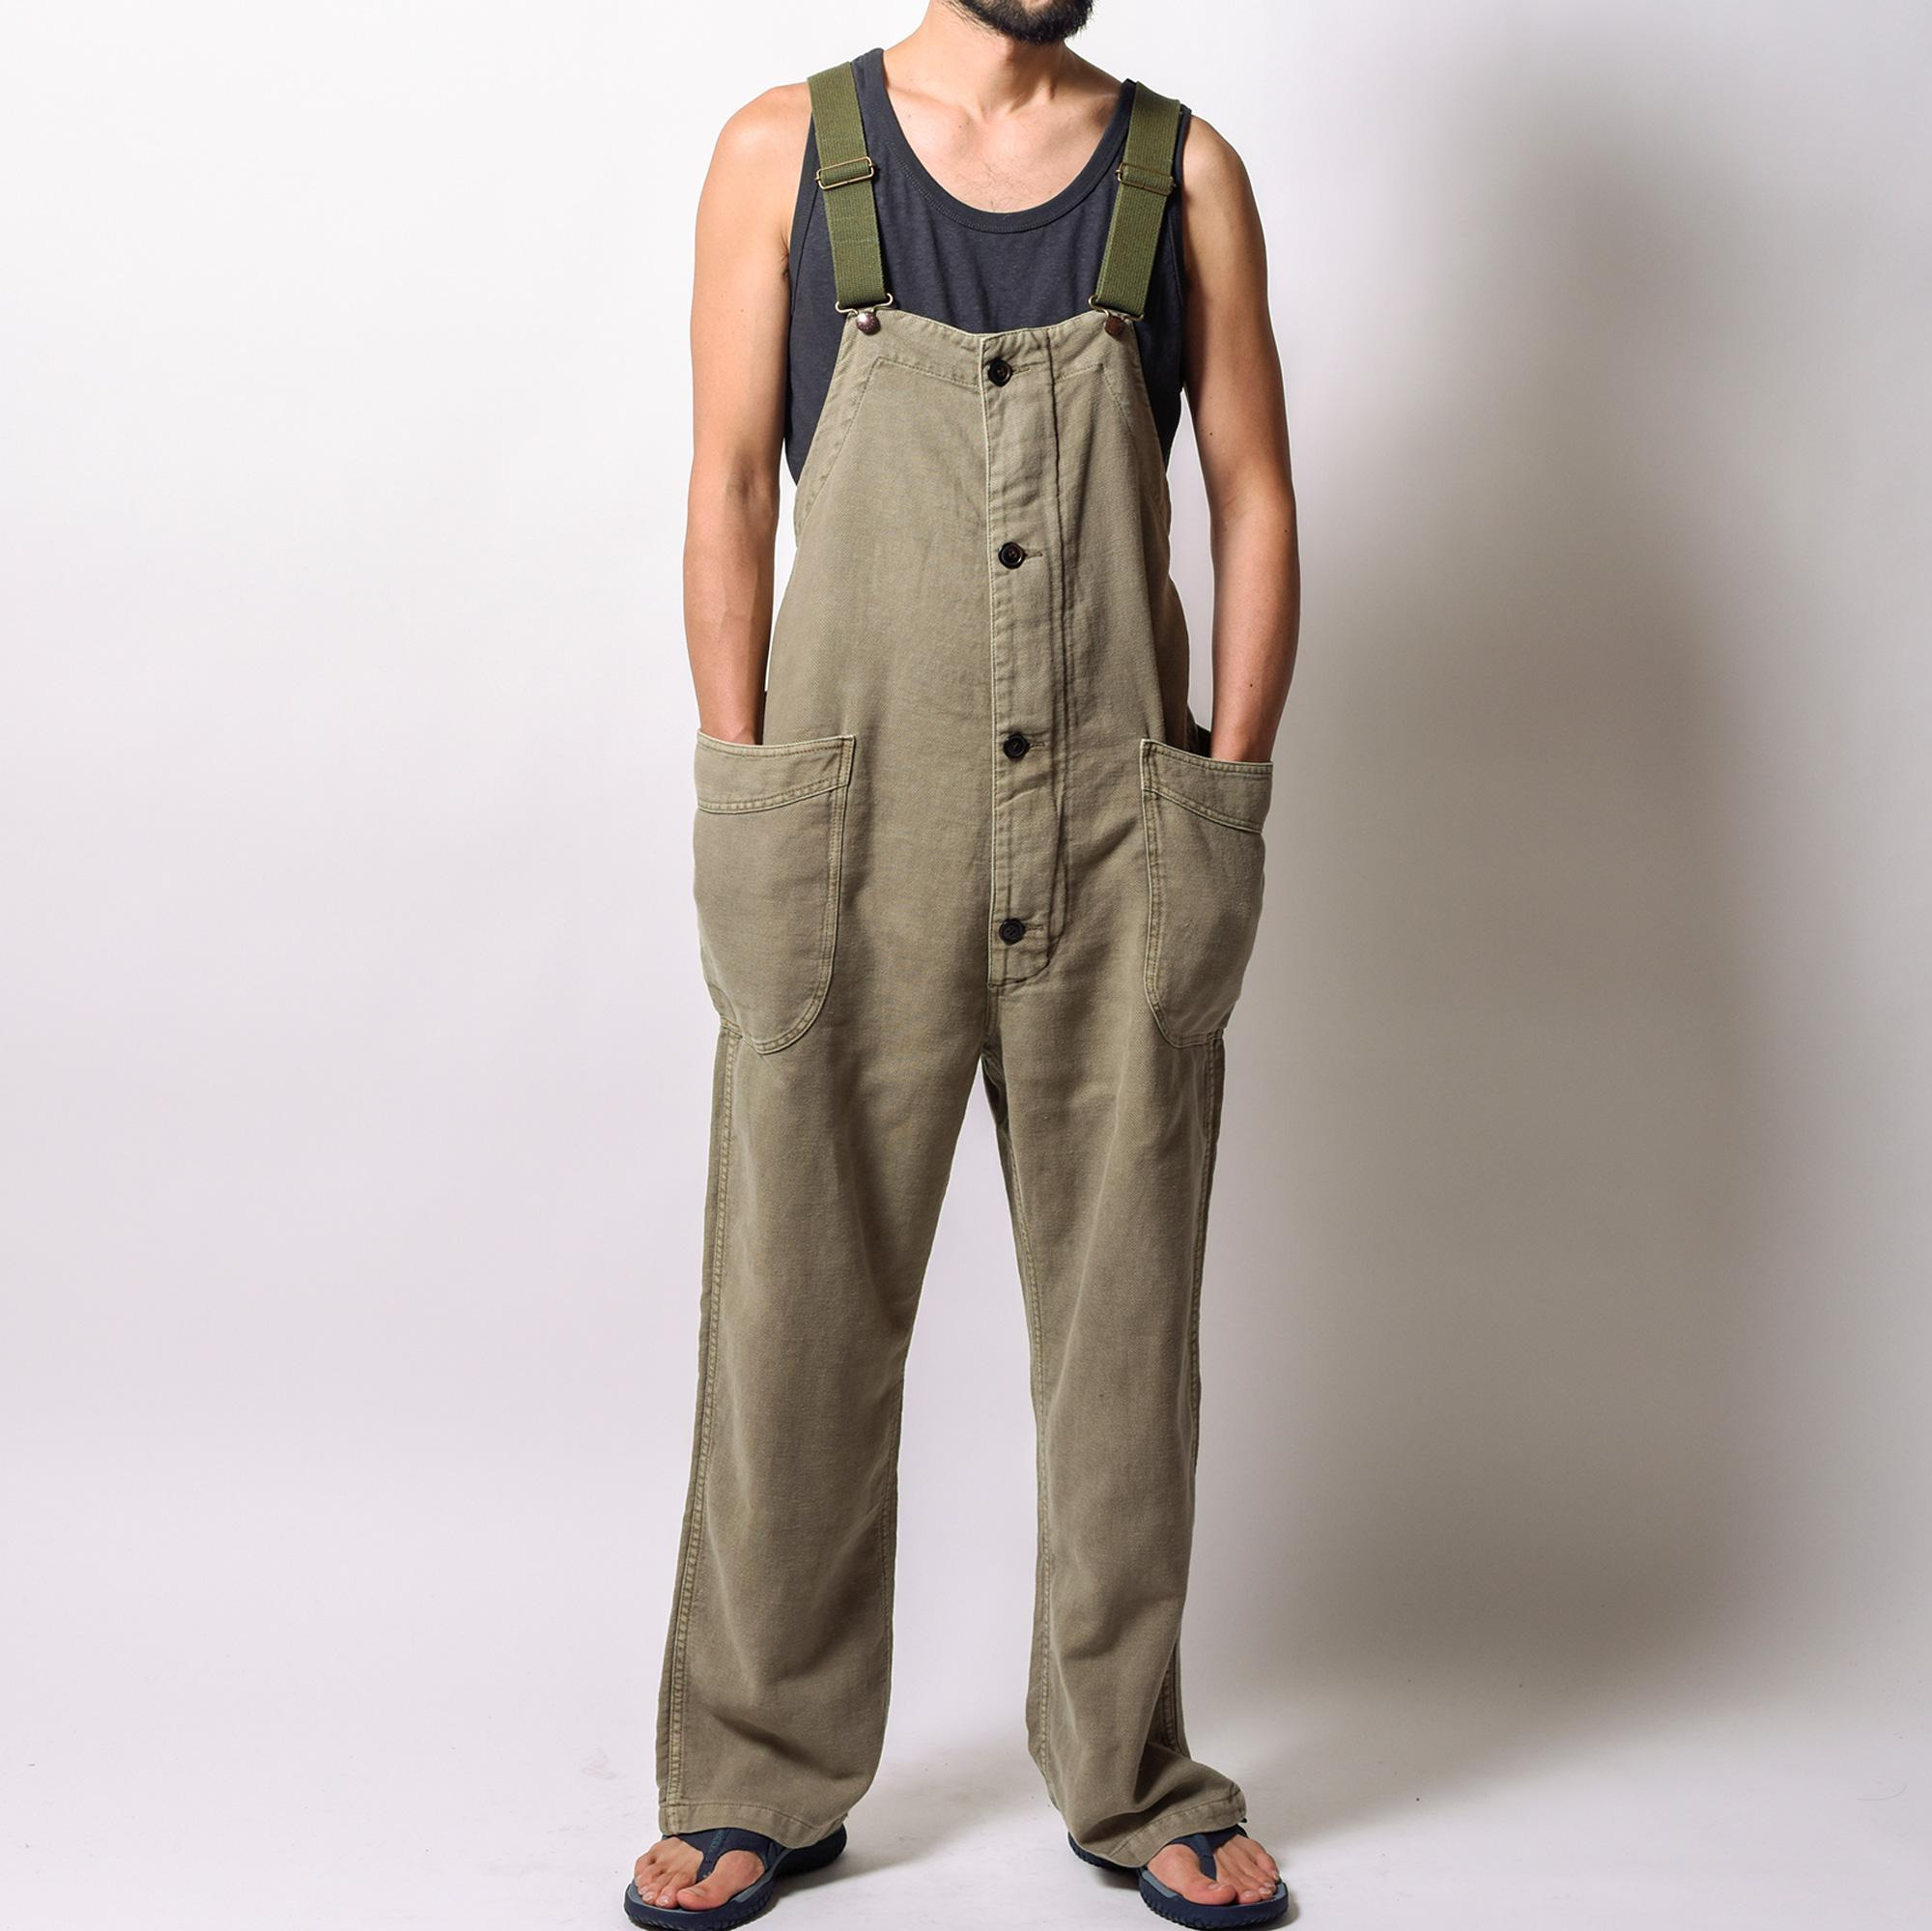 TUBE VENDOR ALL PANTS/H/C SERGE CLOTH